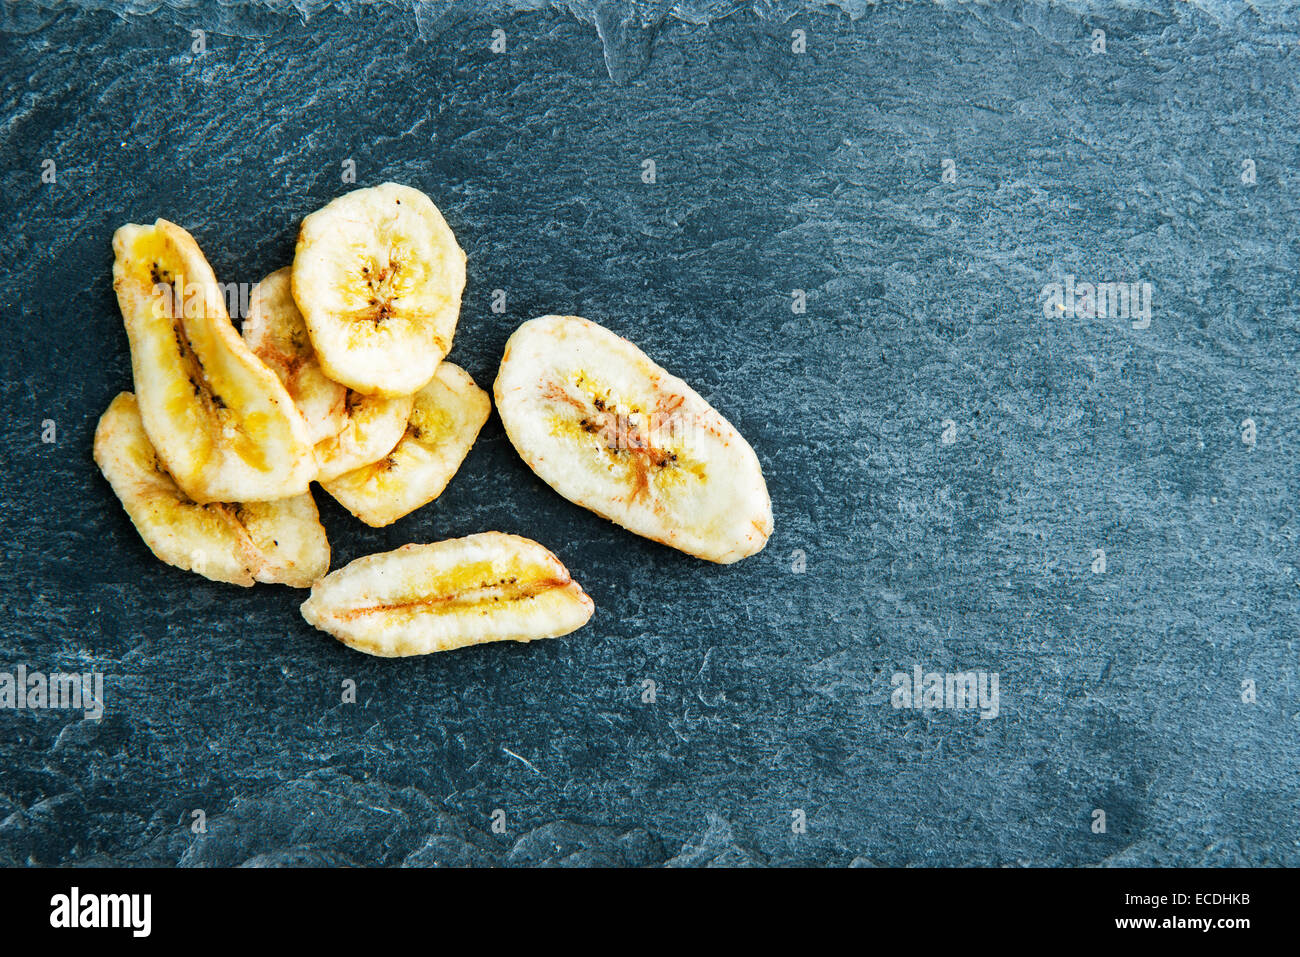 Stone Chips Stock Photos & Stone Chips Stock Images - Alamy